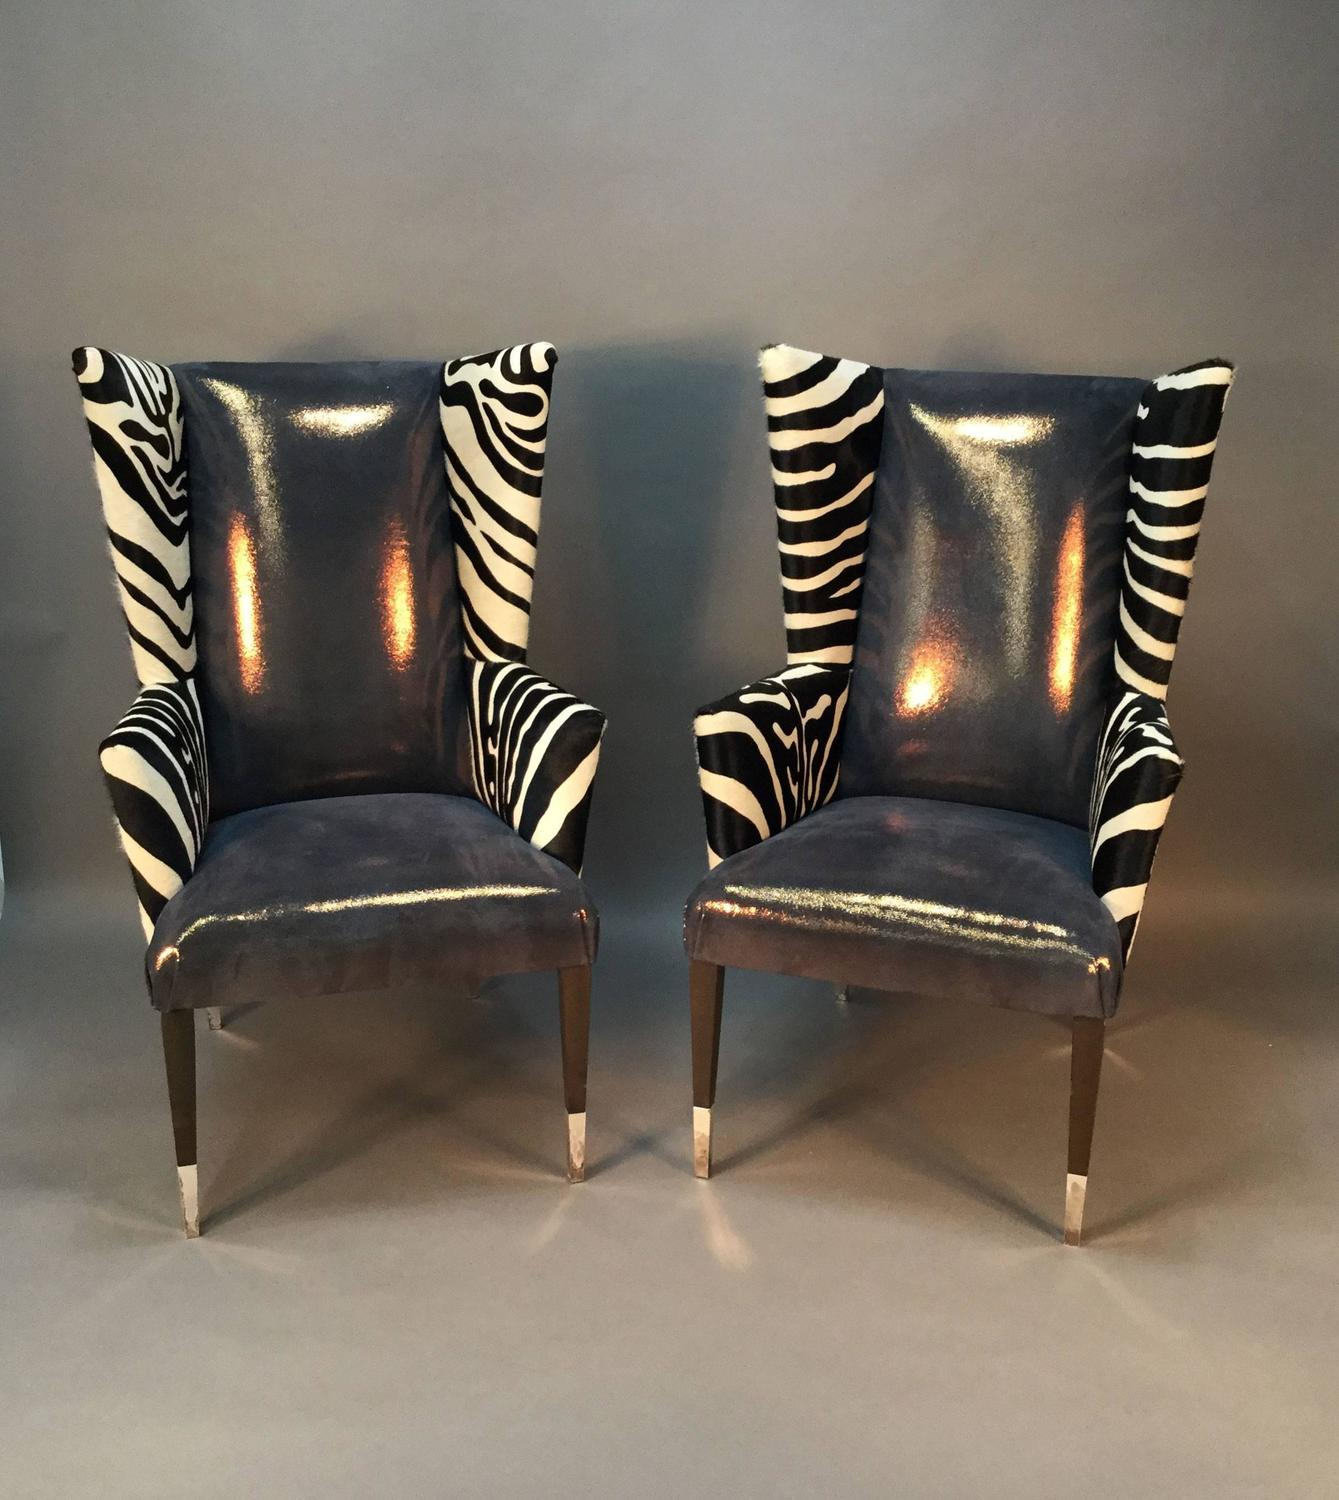 cowhide chairs modern mickey mouse for toddlers uk pair of wingback in zebra printed